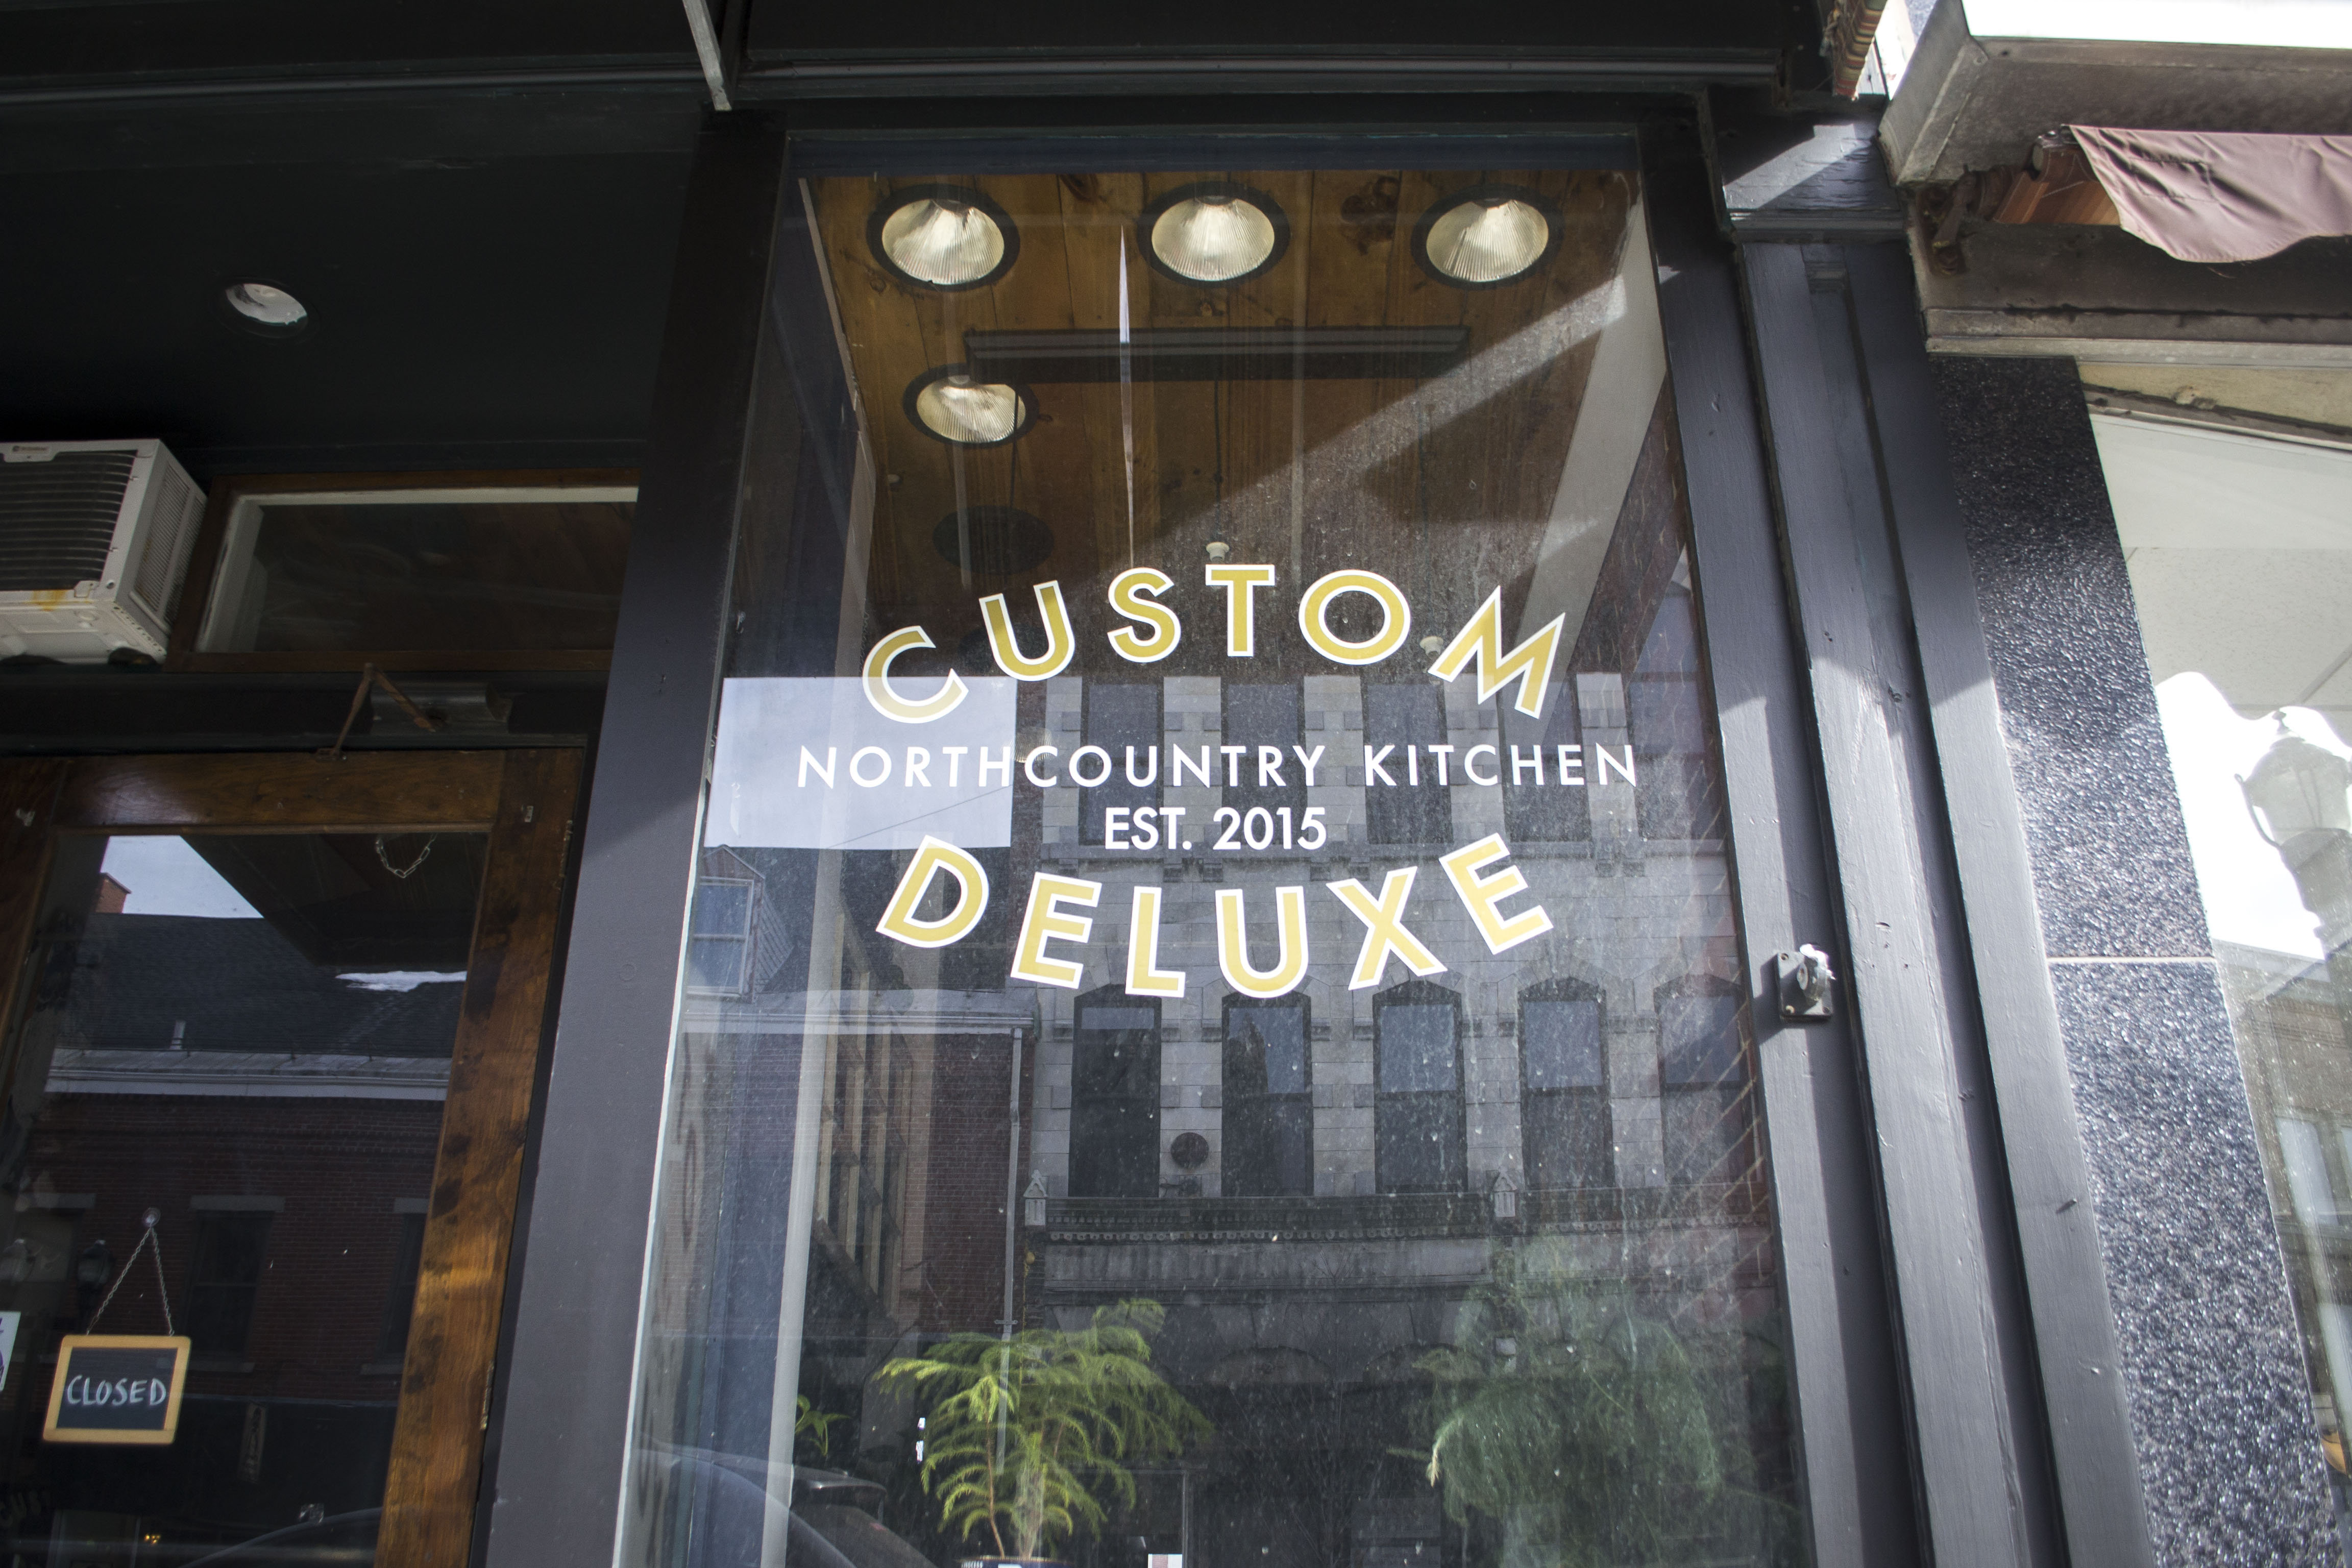 The facade of Custom Deluxe is pictured in February. A new bill in the 128th Legislature, with amendments from Rep. Ryan Fecteau, D-Biddeford, would restore the tip credit to Maine's tipped restaurant workers. JOURNAL TRIBUNE FILE PHOTO/ALAN BENNETT